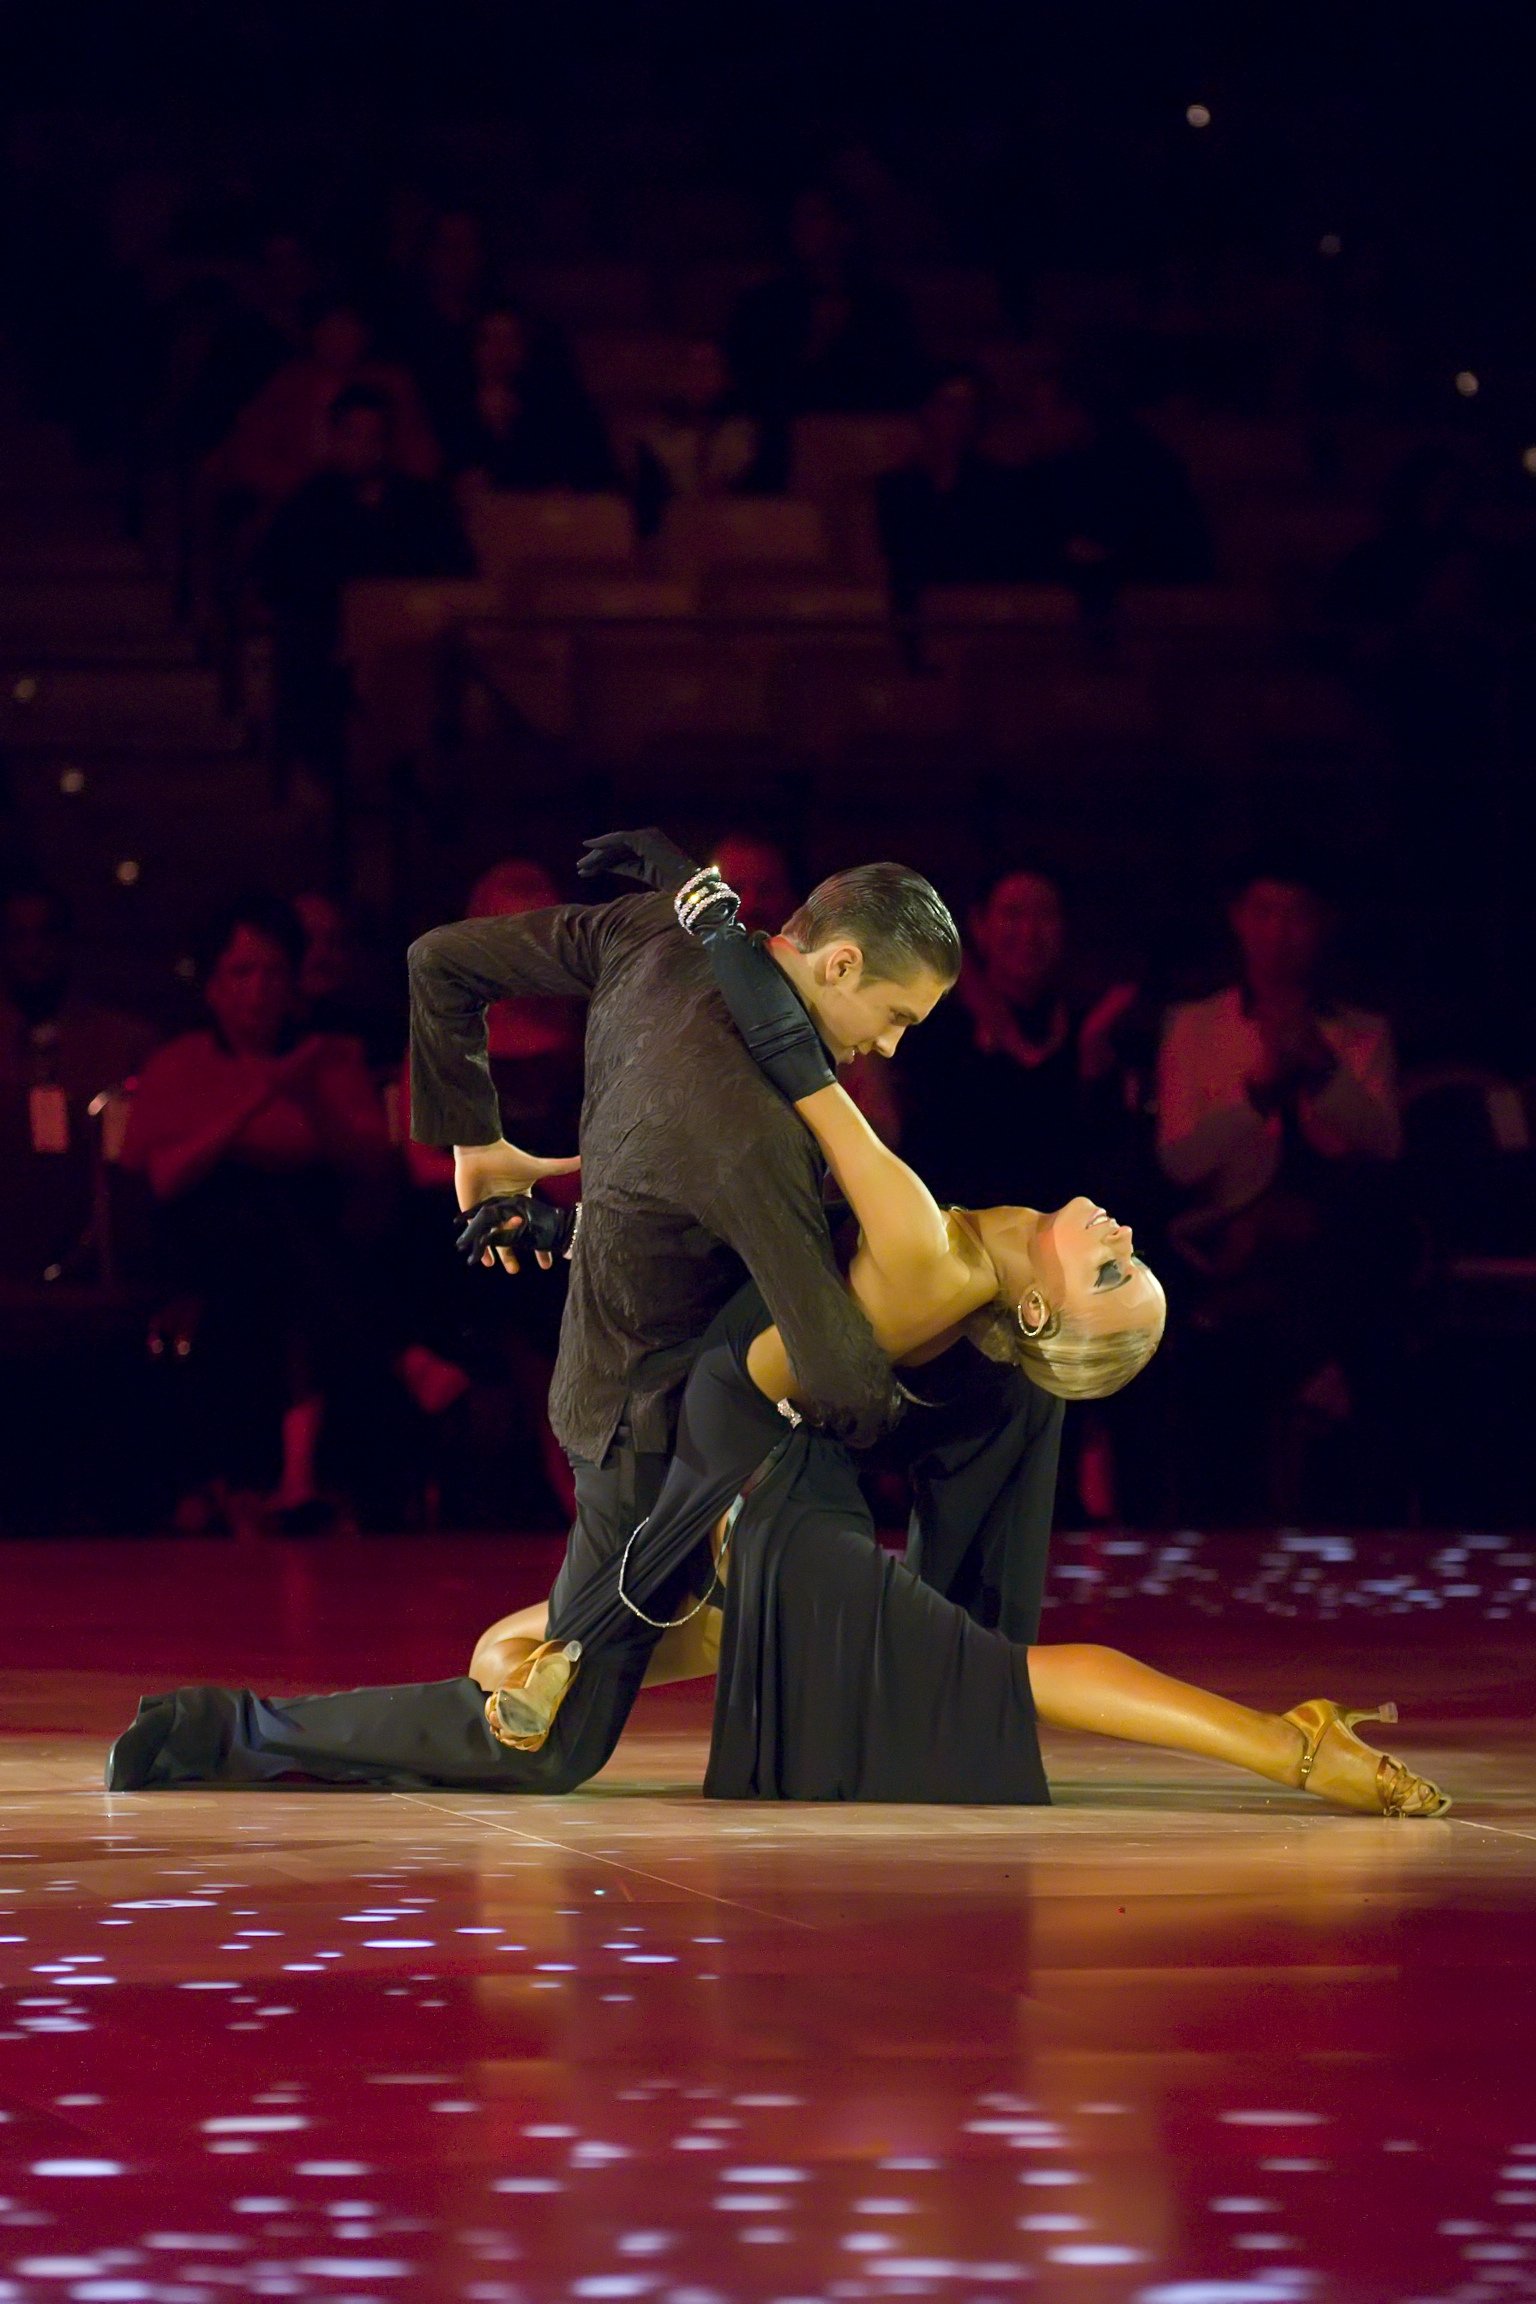 Karolina Paliwoda on a couple's first dance